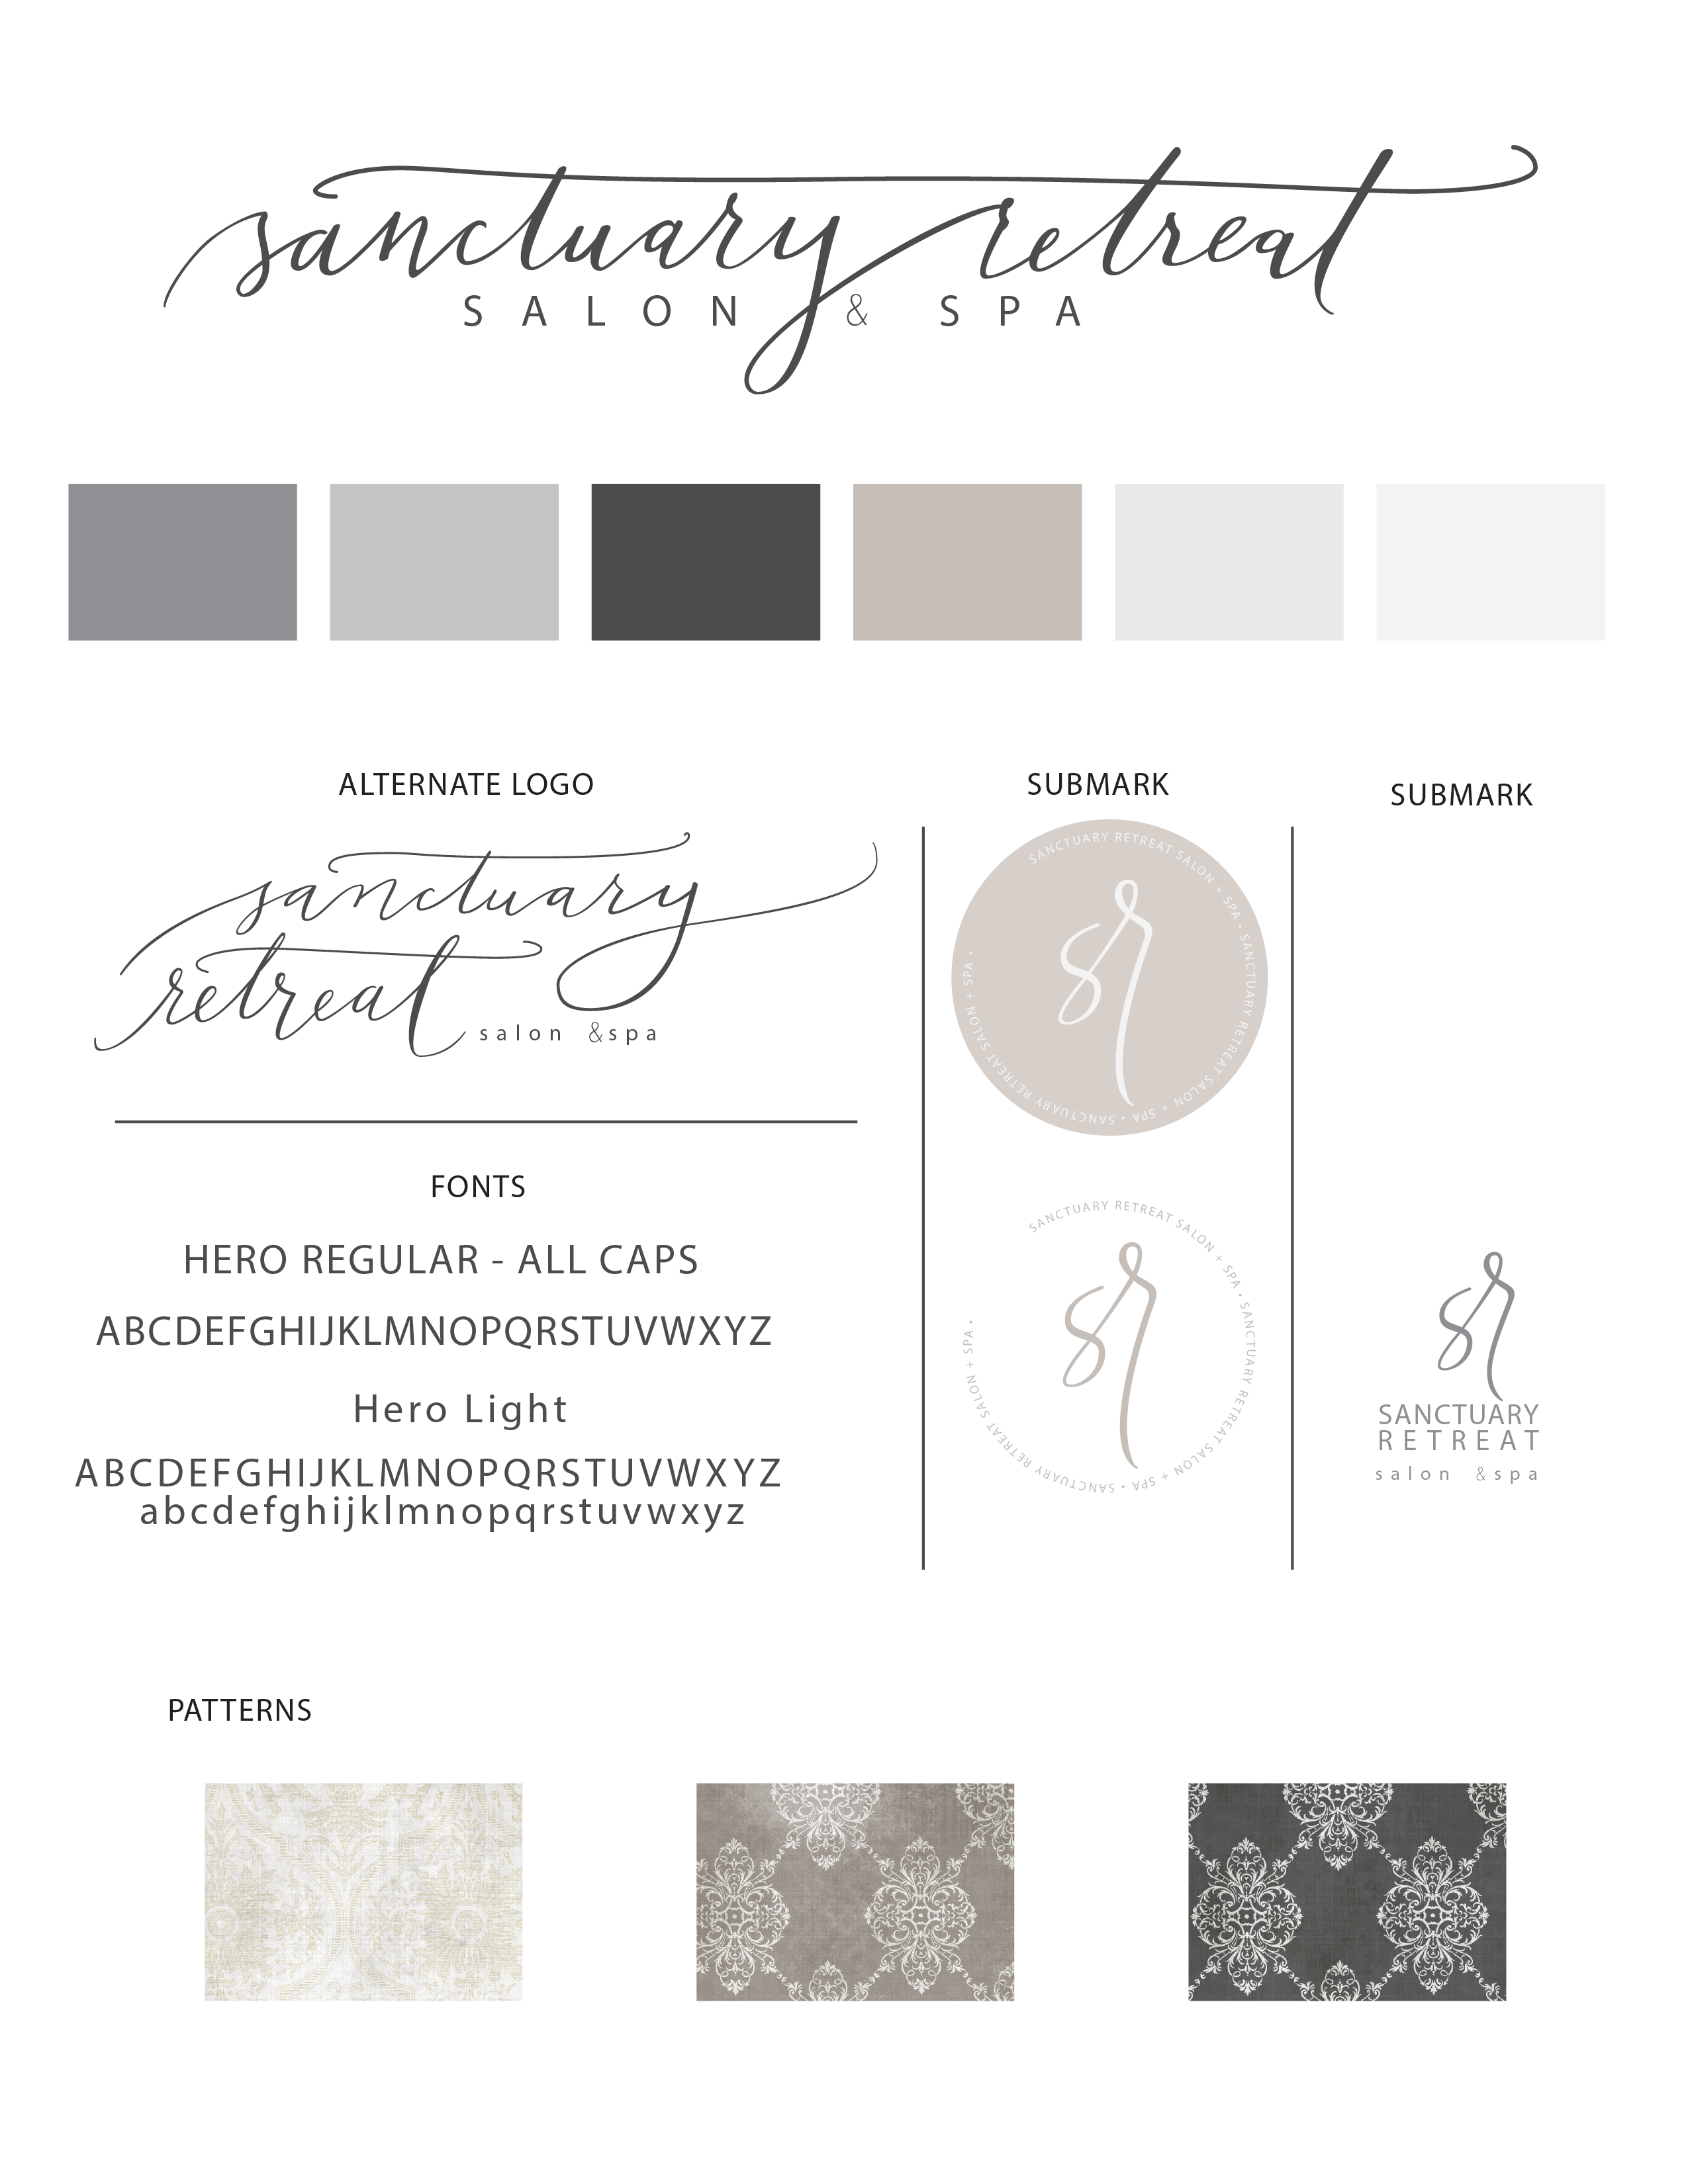 Sanctuary Retreat Salon and Spa branding guide designed by Charis Rountree at…